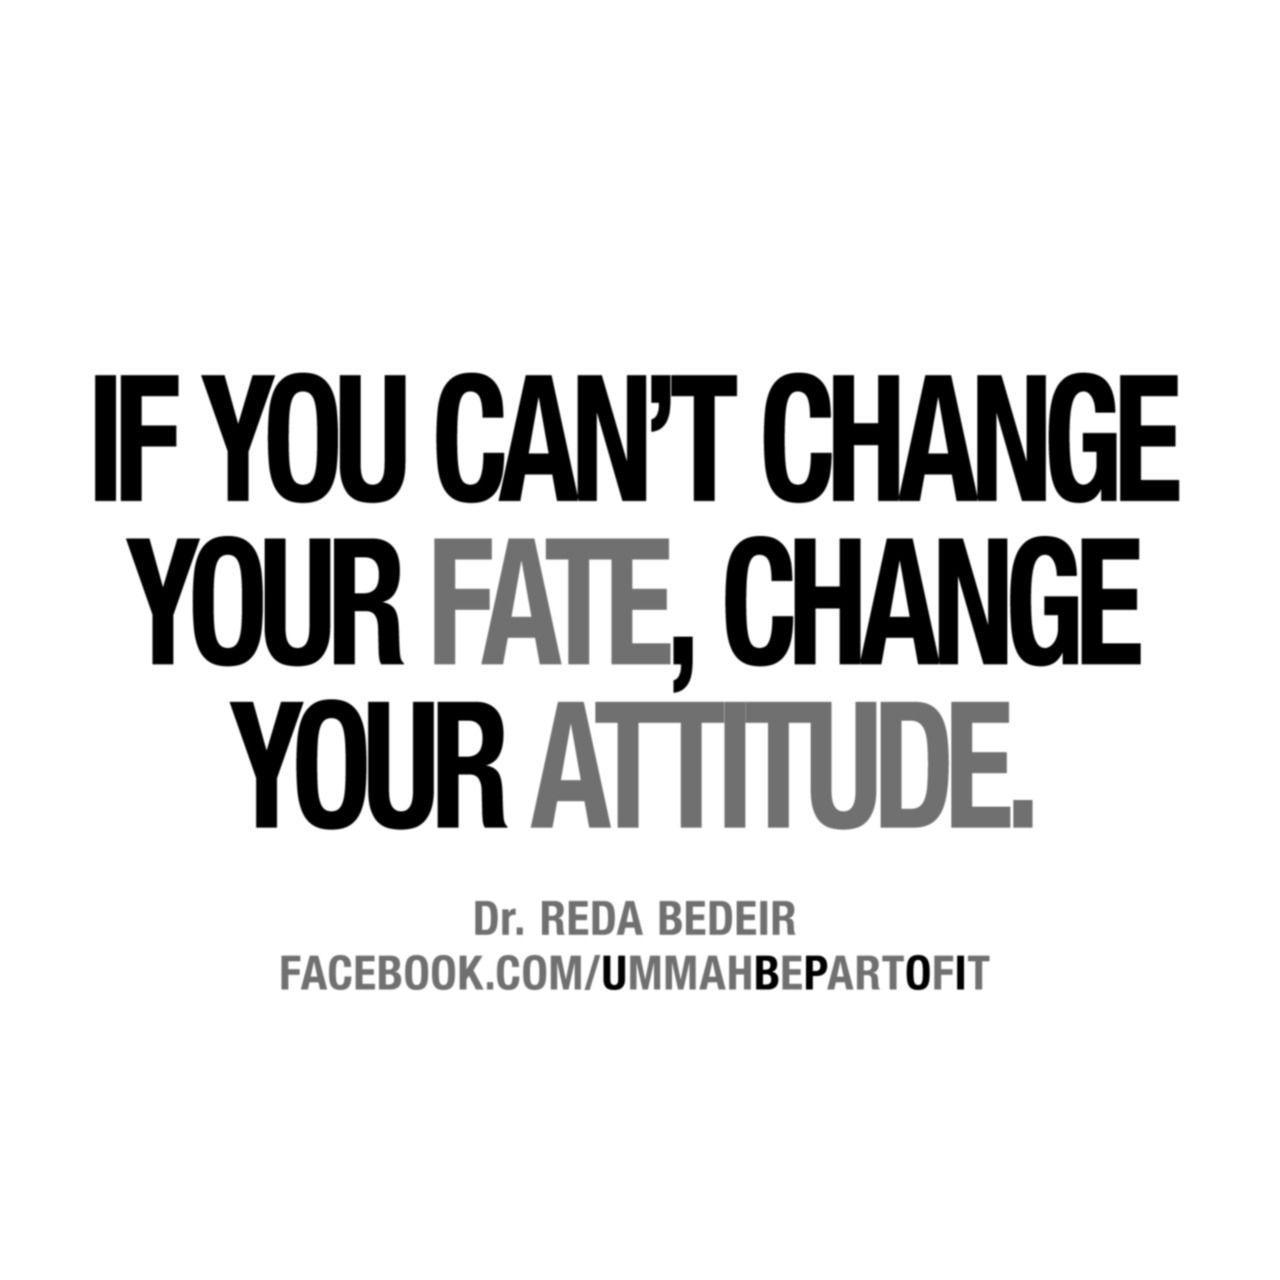 Attitude Quotes Wallpapers Wallpaper Cave